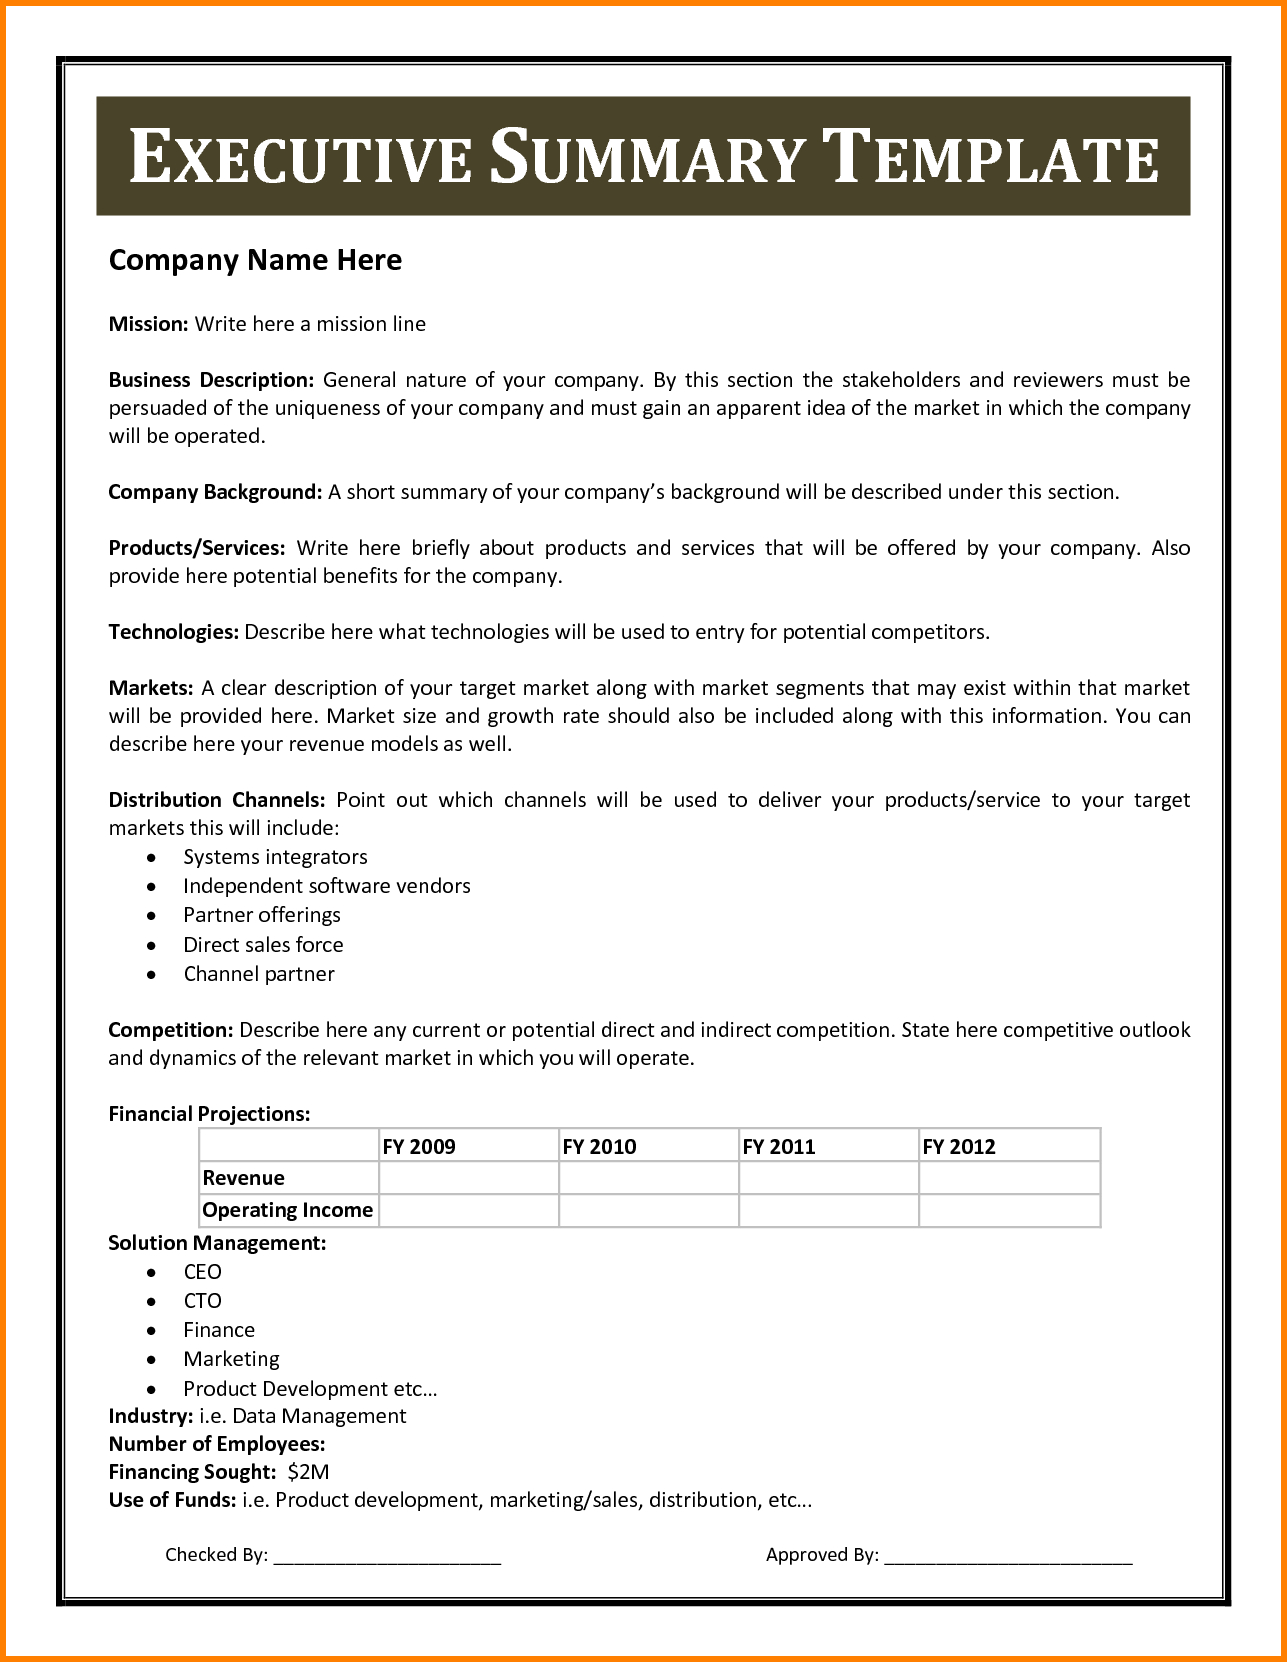 002 Executive Summary Template Doc Word Tcabzfr3 Wondrous With Regard To Executive Summary Report Template